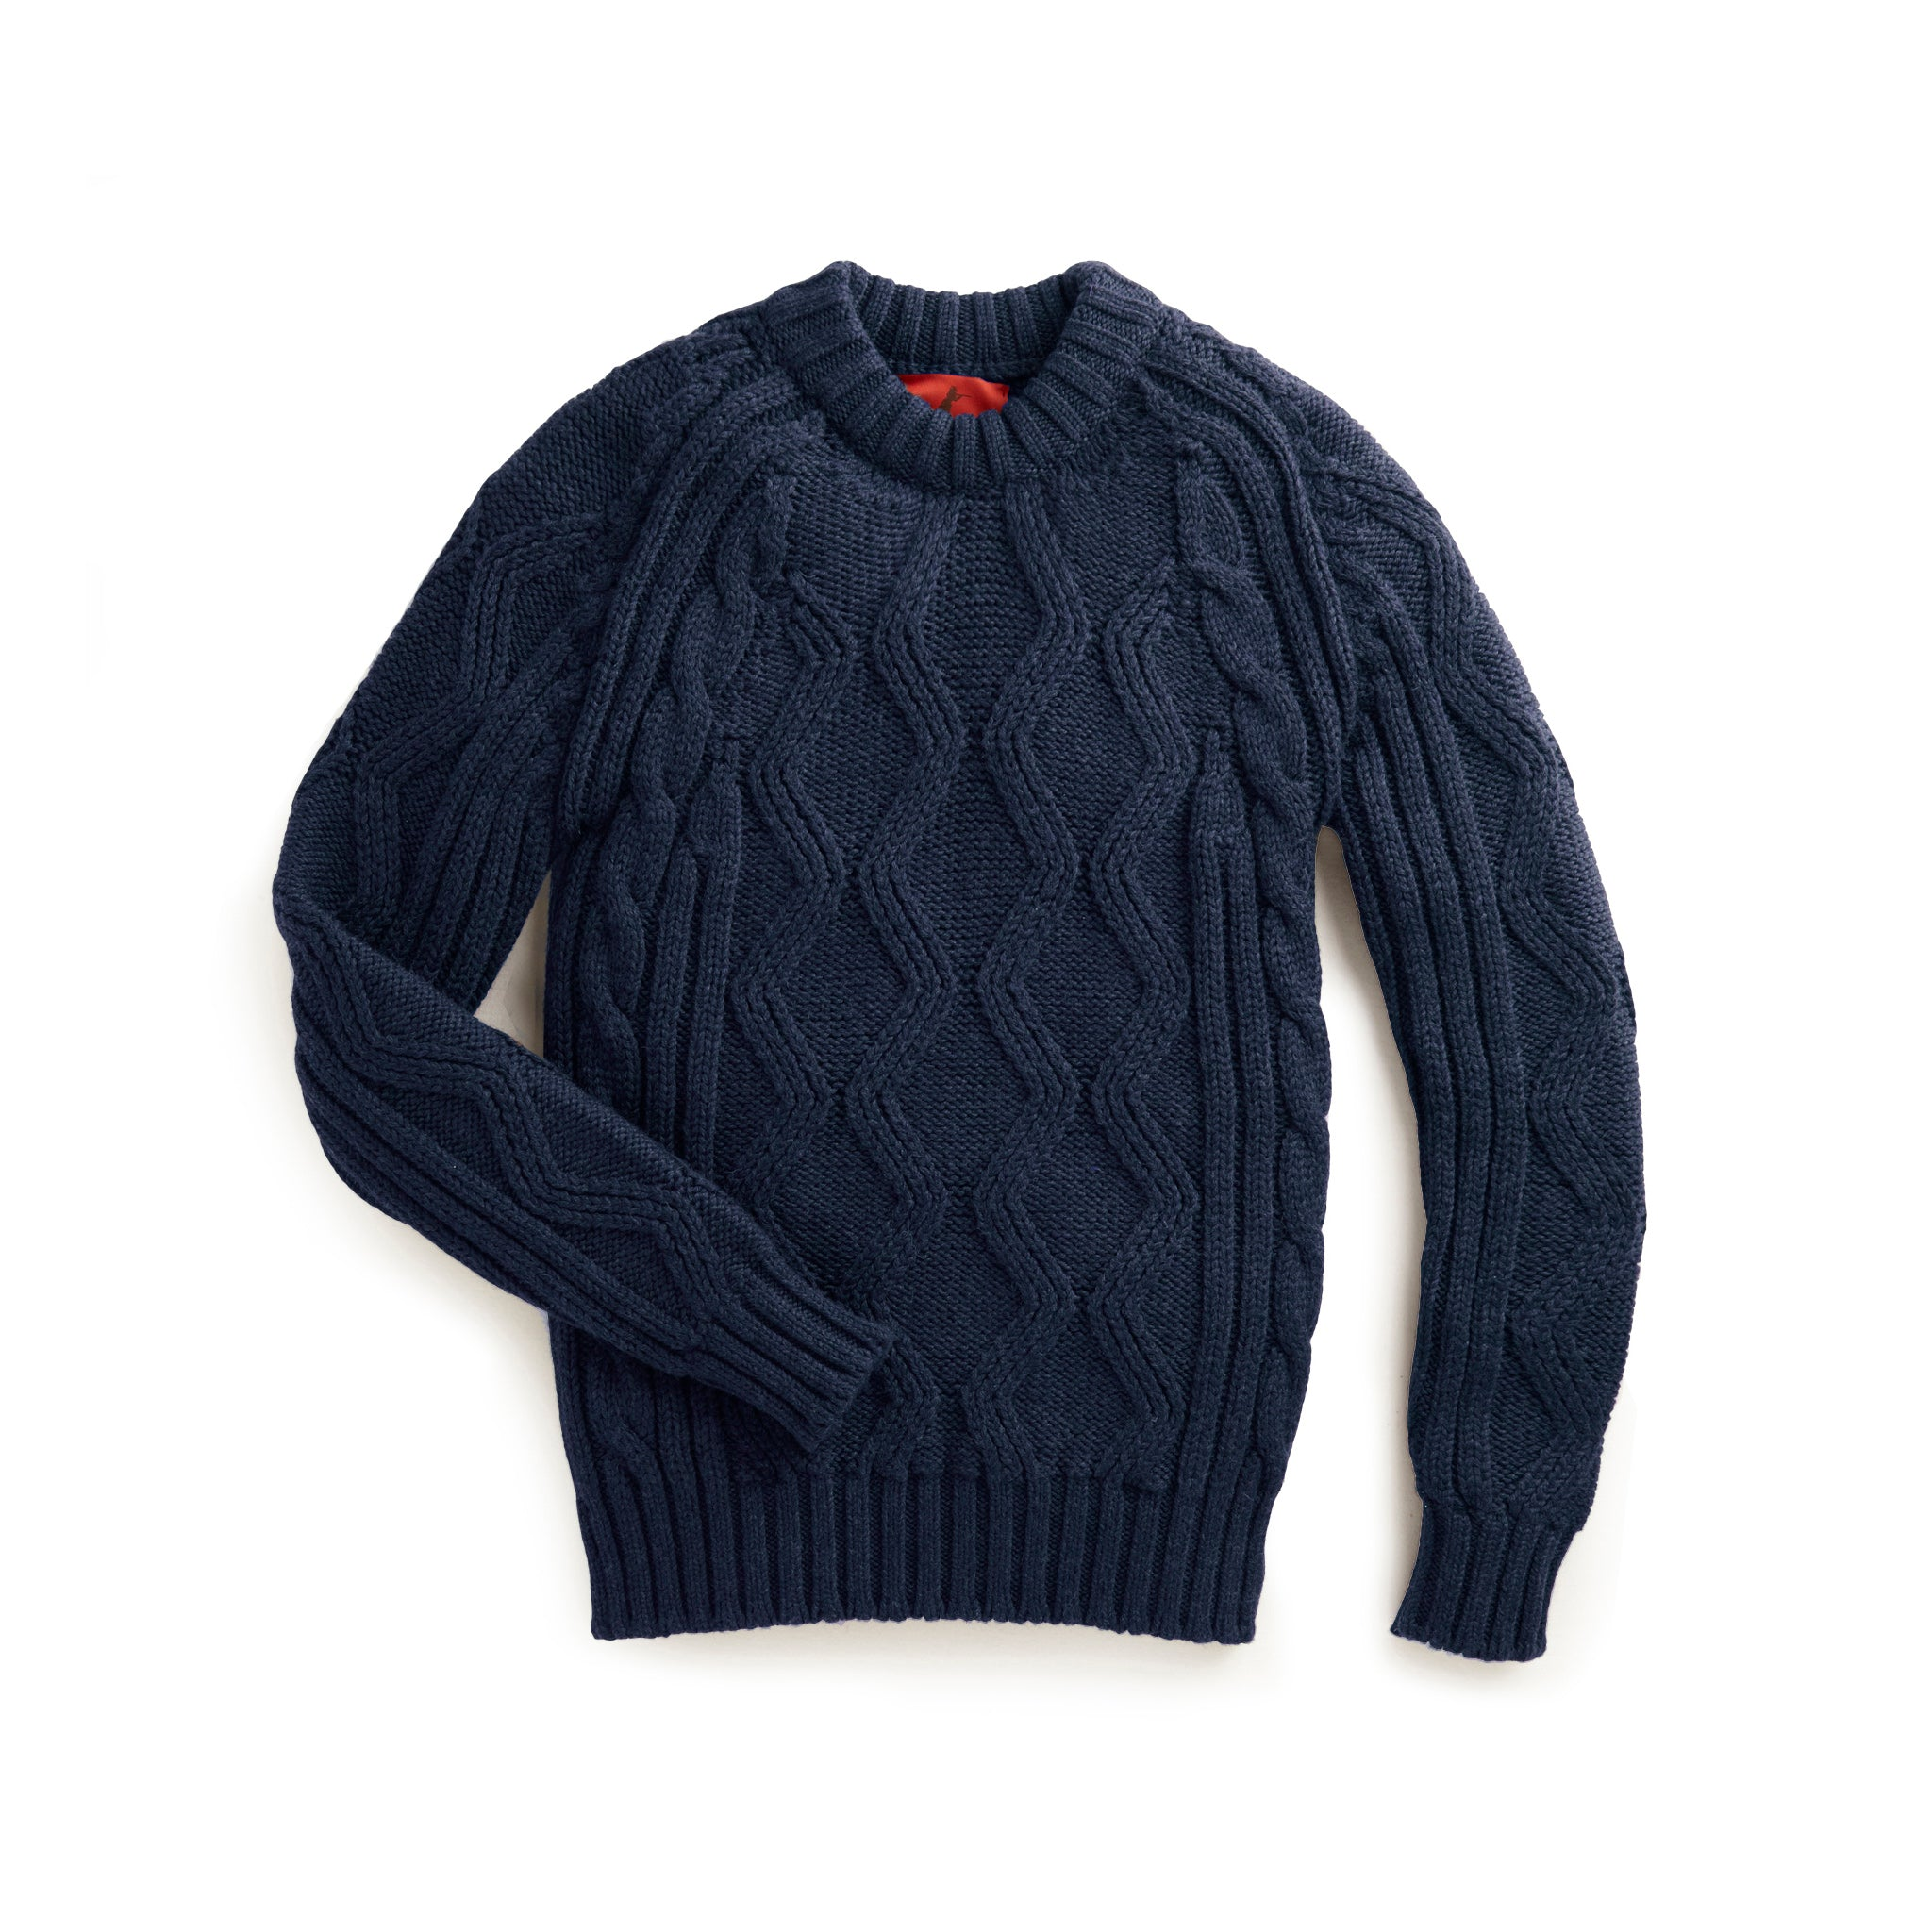 Archie Foal Men's Oskar Cable Knit Sweater in NAVY